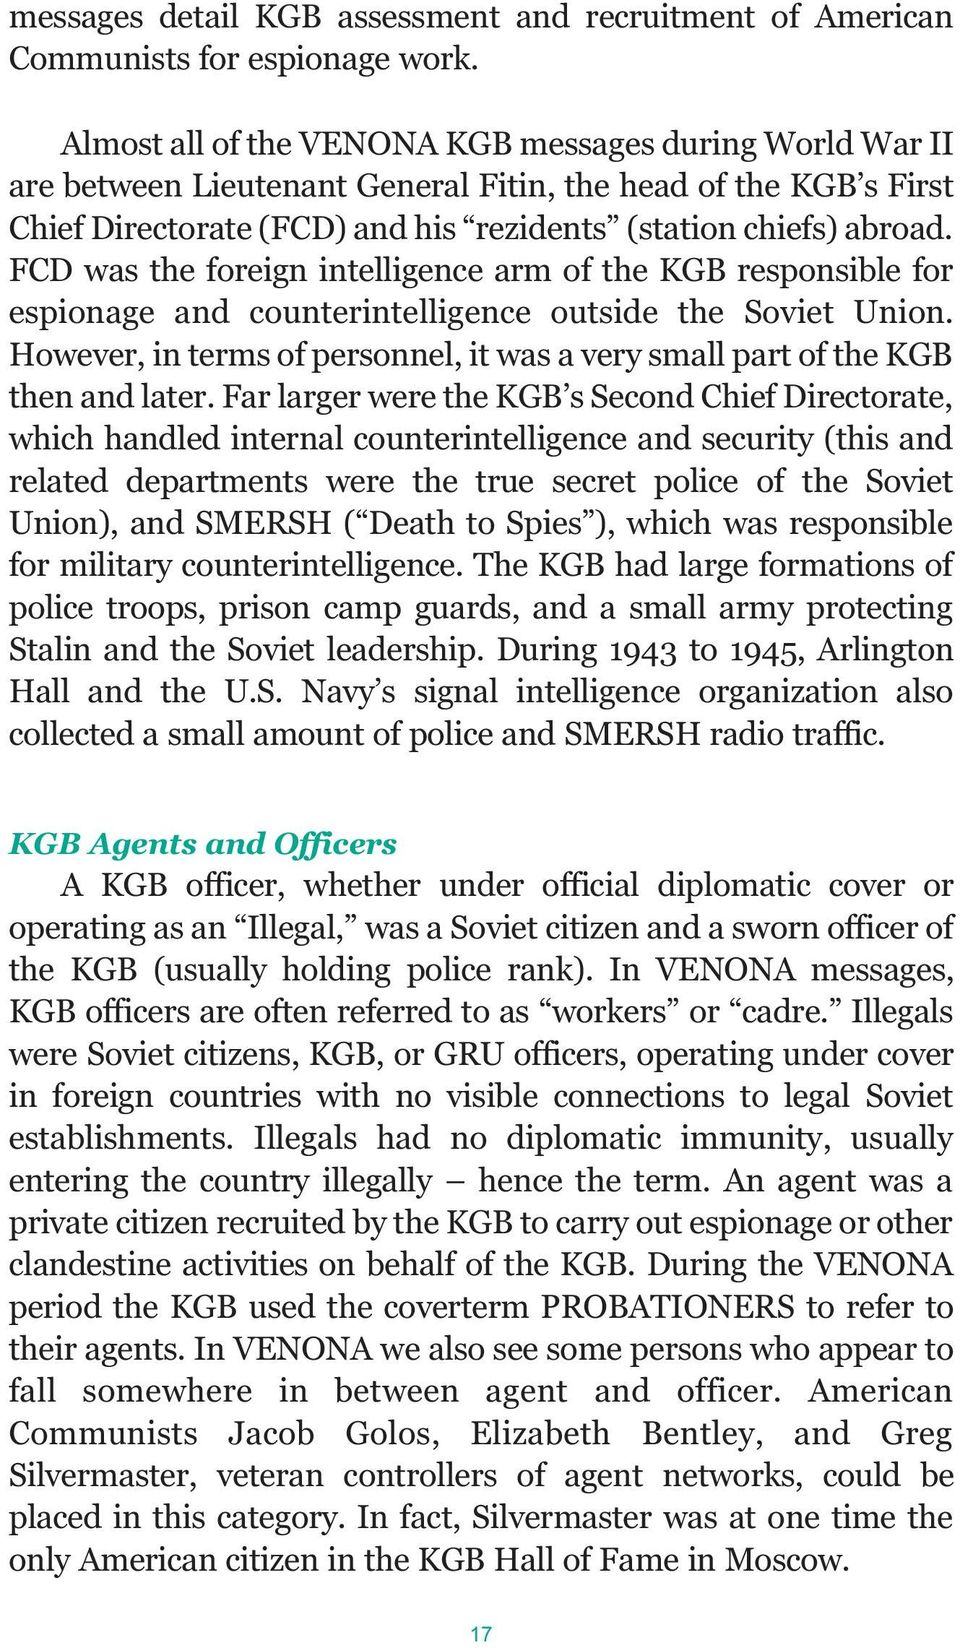 FCD was the foreign intelligence arm of the KGB responsible for espionage and counterintelligence outside the Soviet Union.